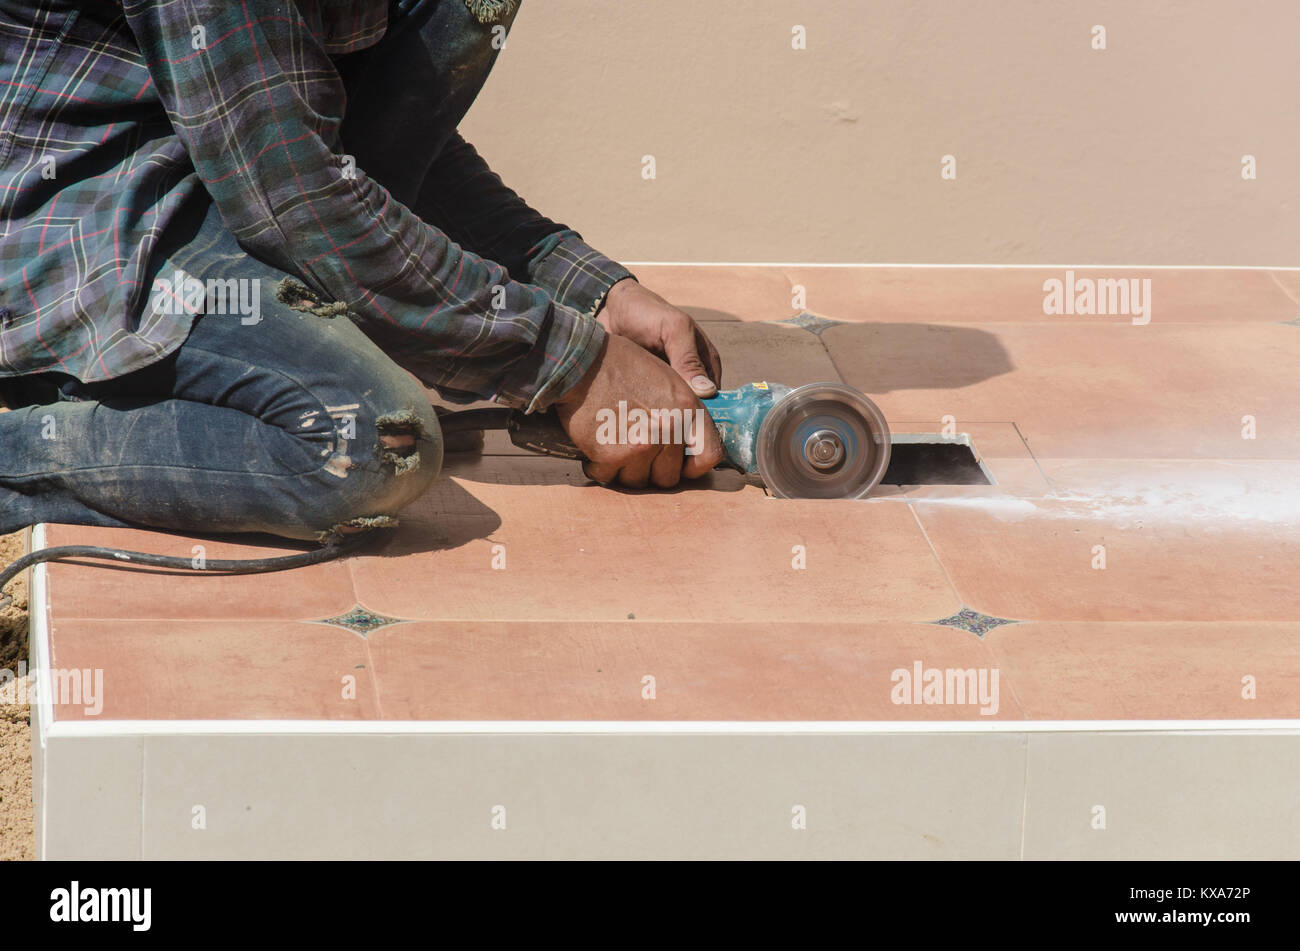 Electric tile cutter stock photos electric tile cutter stock drill work using tile cutting tool stock image dailygadgetfo Image collections